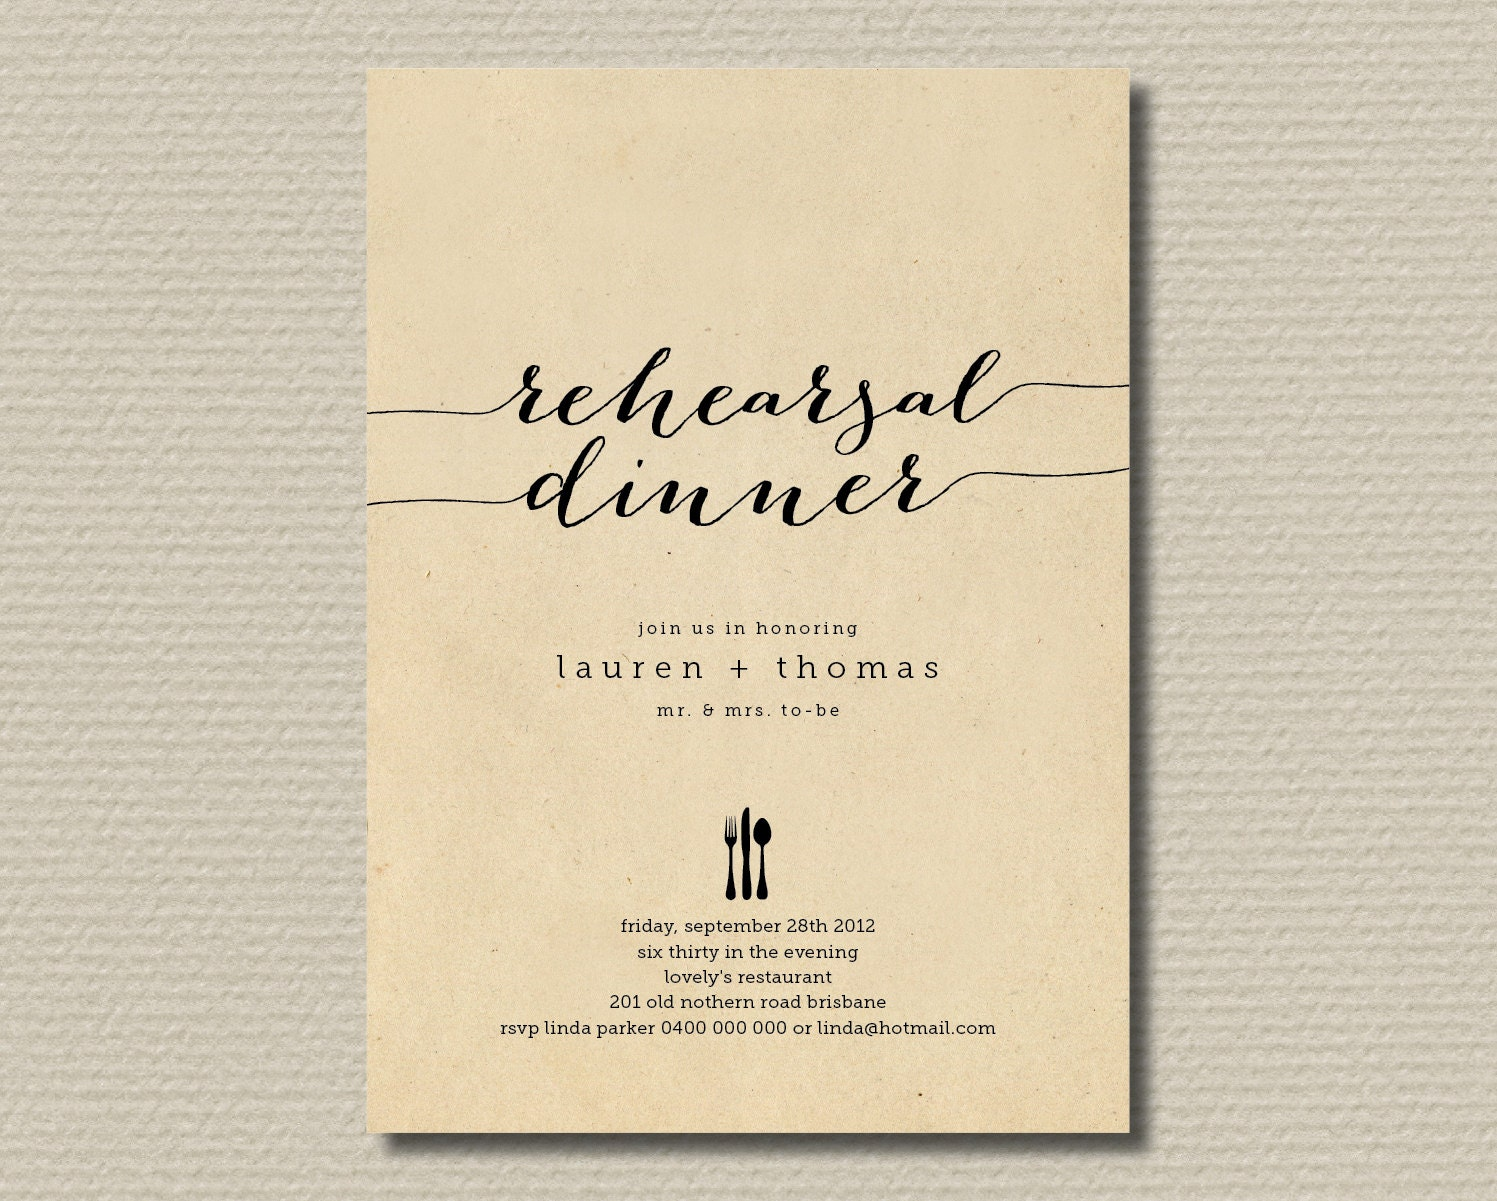 corporate event invitation design inspiration